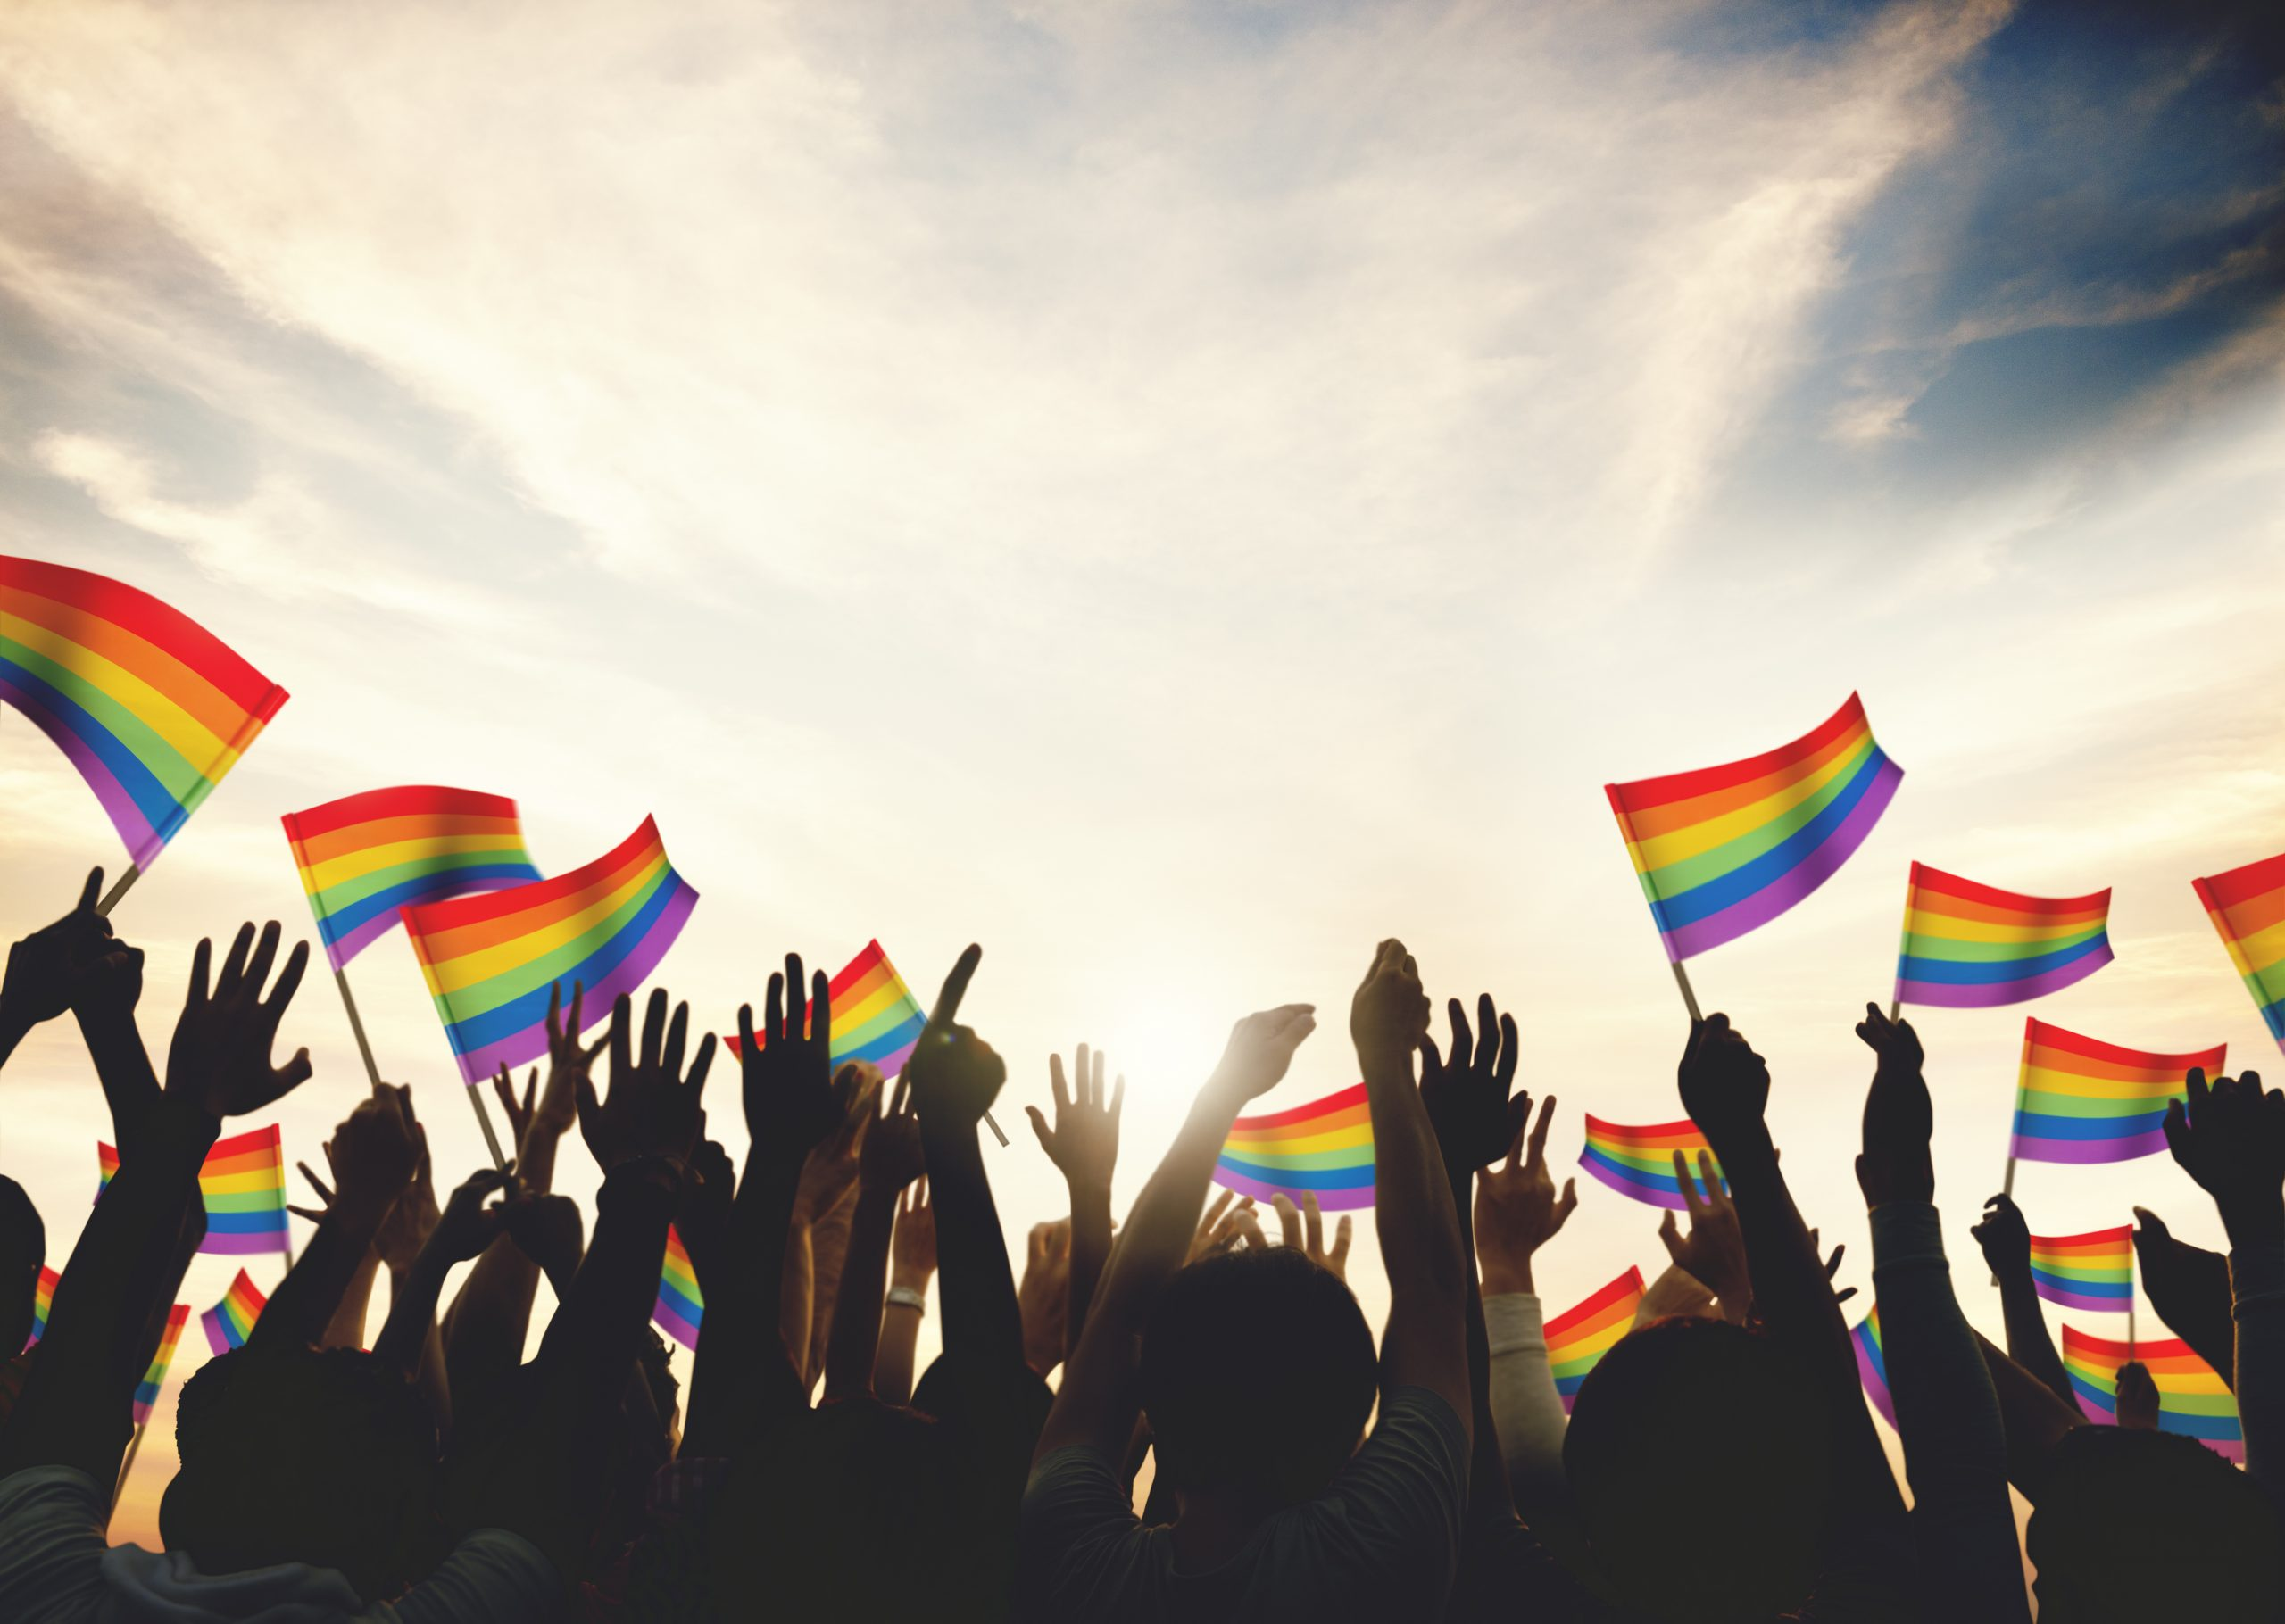 Bostock Anniversary: EEOC Issues Guidance on Protections for LGBTQ+ Individuals in the Workforce